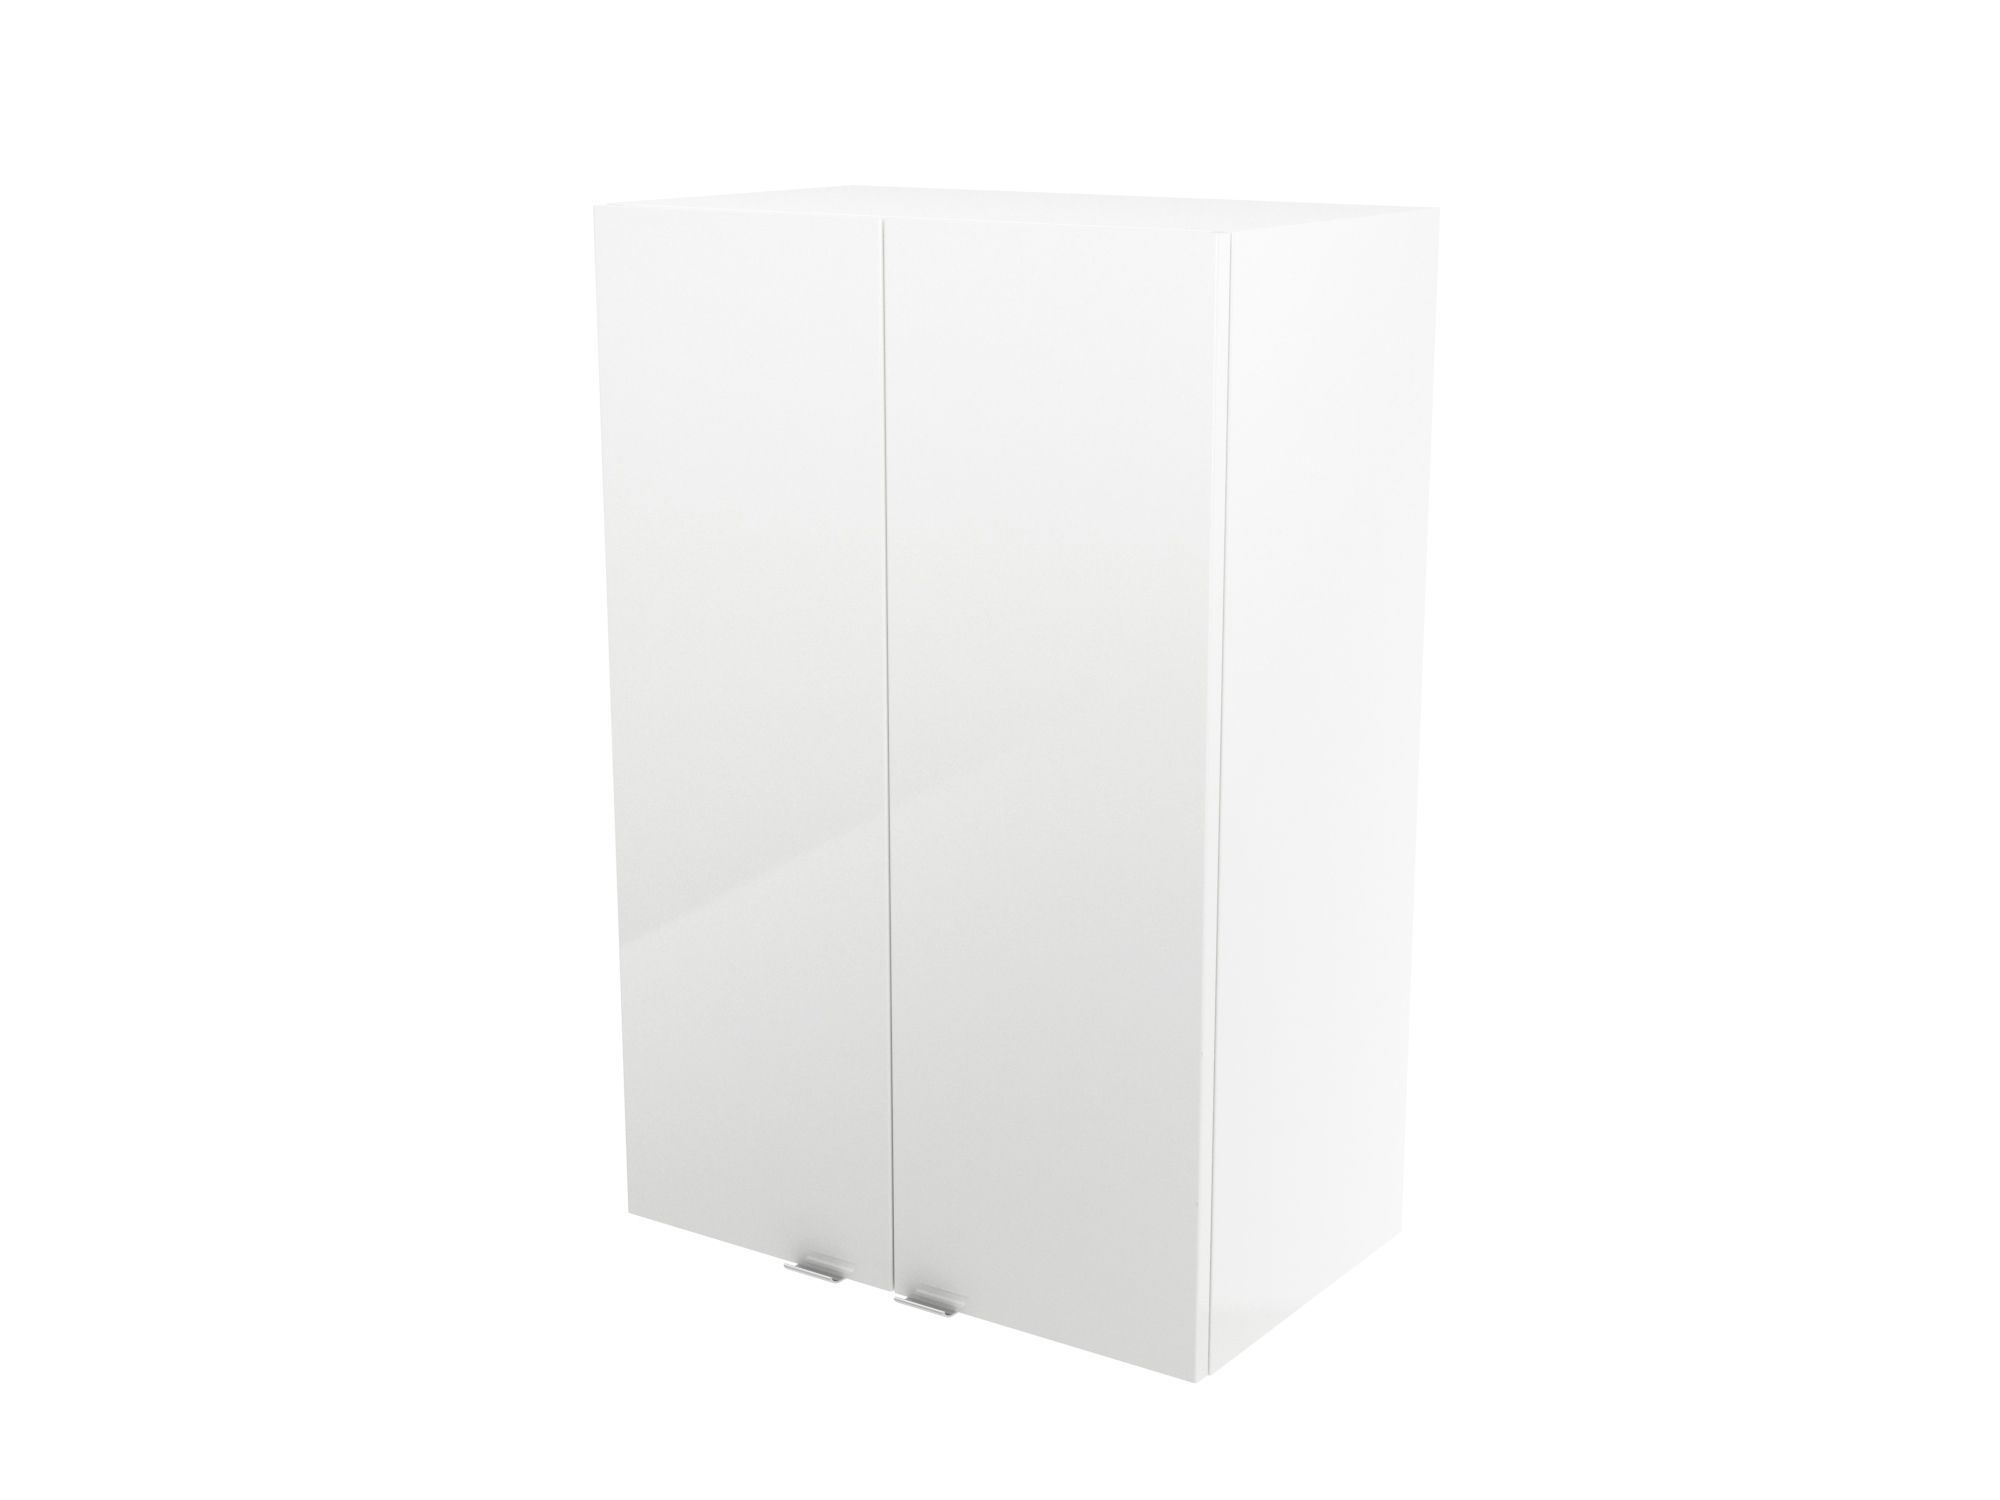 Cooke & Lewis Imandra Gloss White Deep Wall Cabinet, (w)600mm